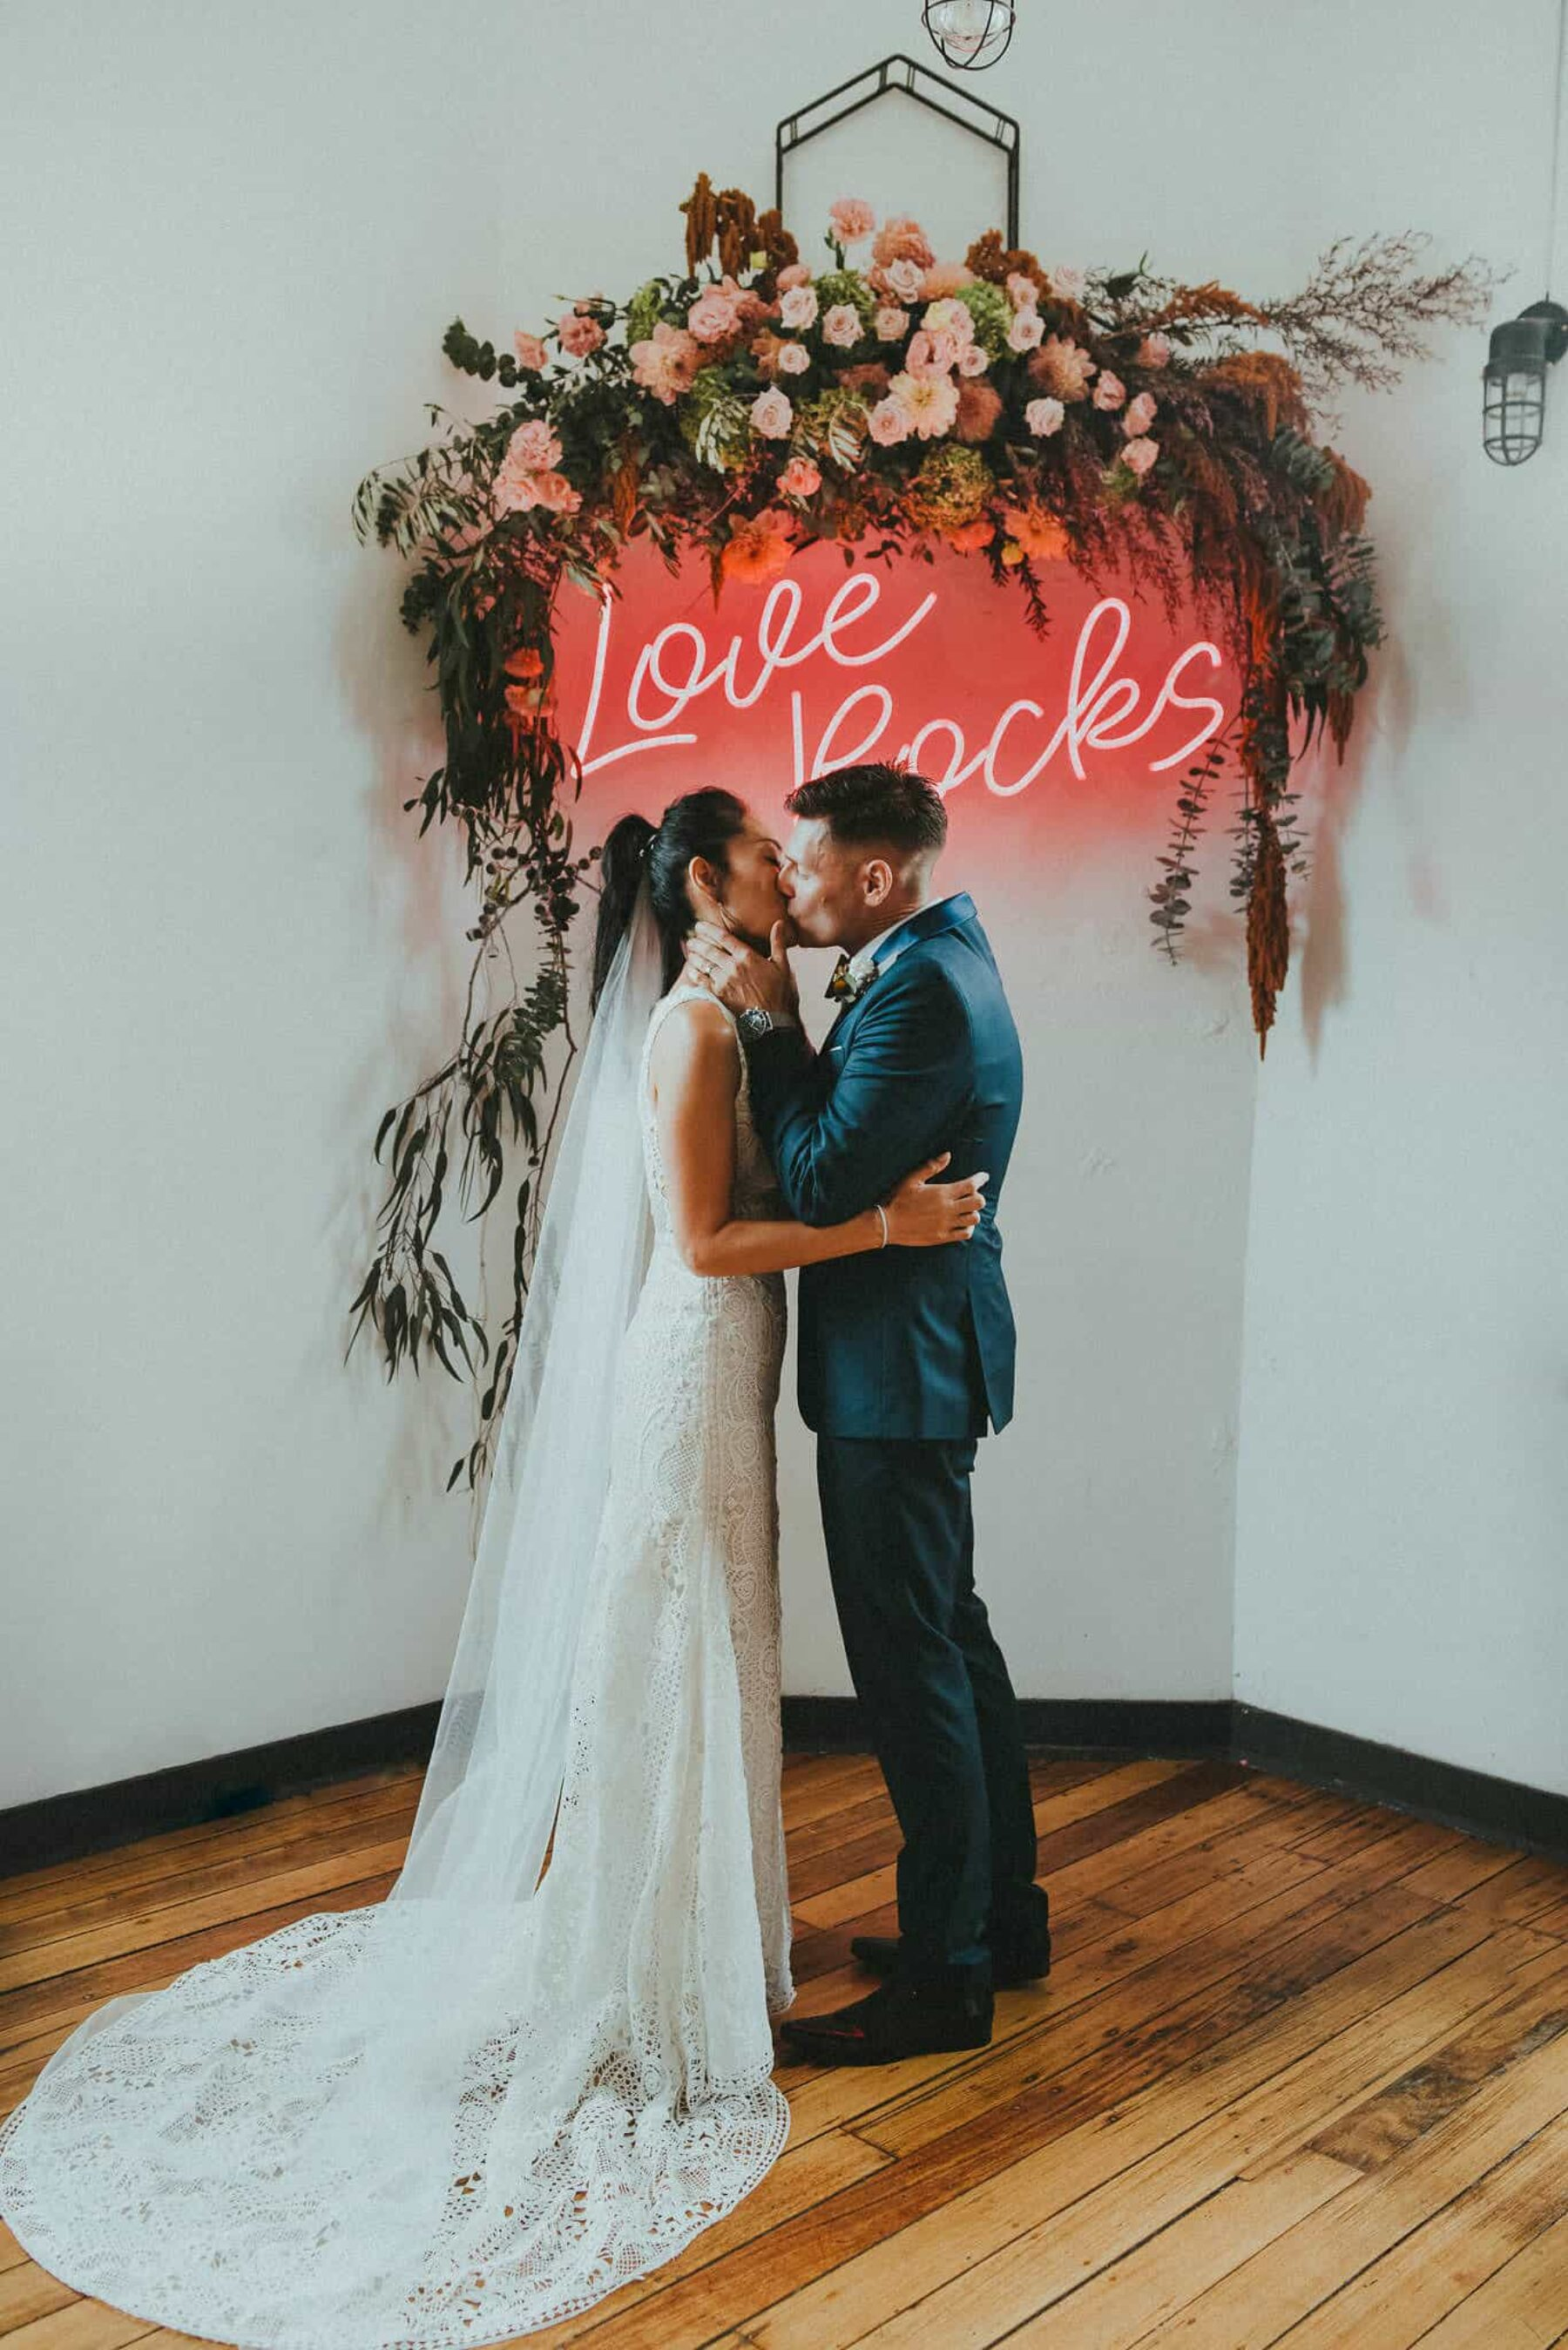 floral wedding backdrop with pink neon sign